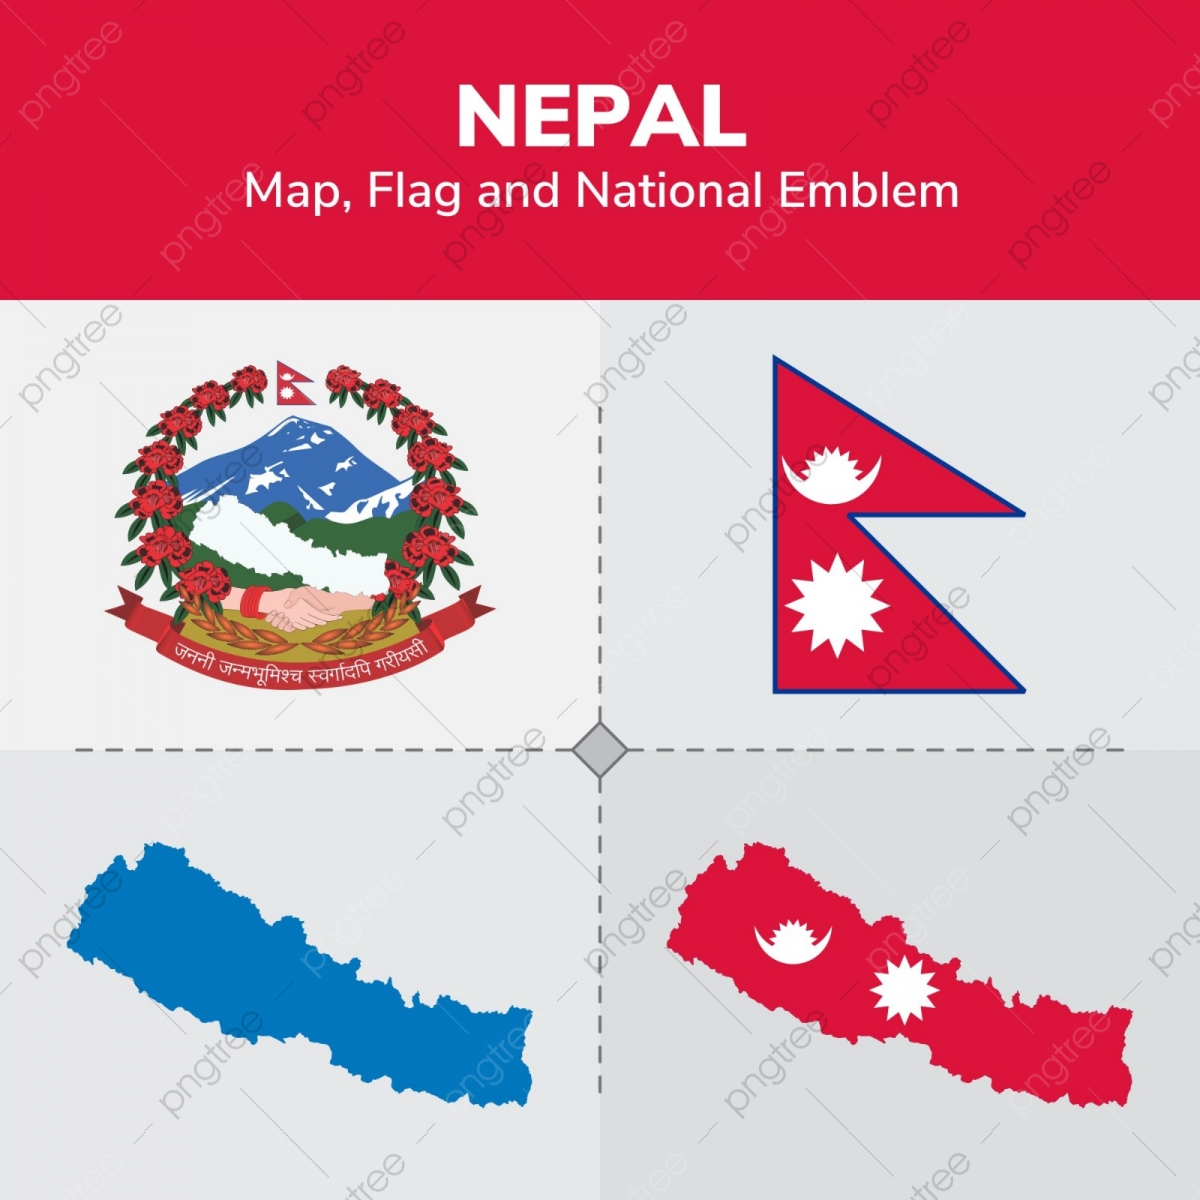 Nepal Map Flag And National Emblem, Continents, Countries ...